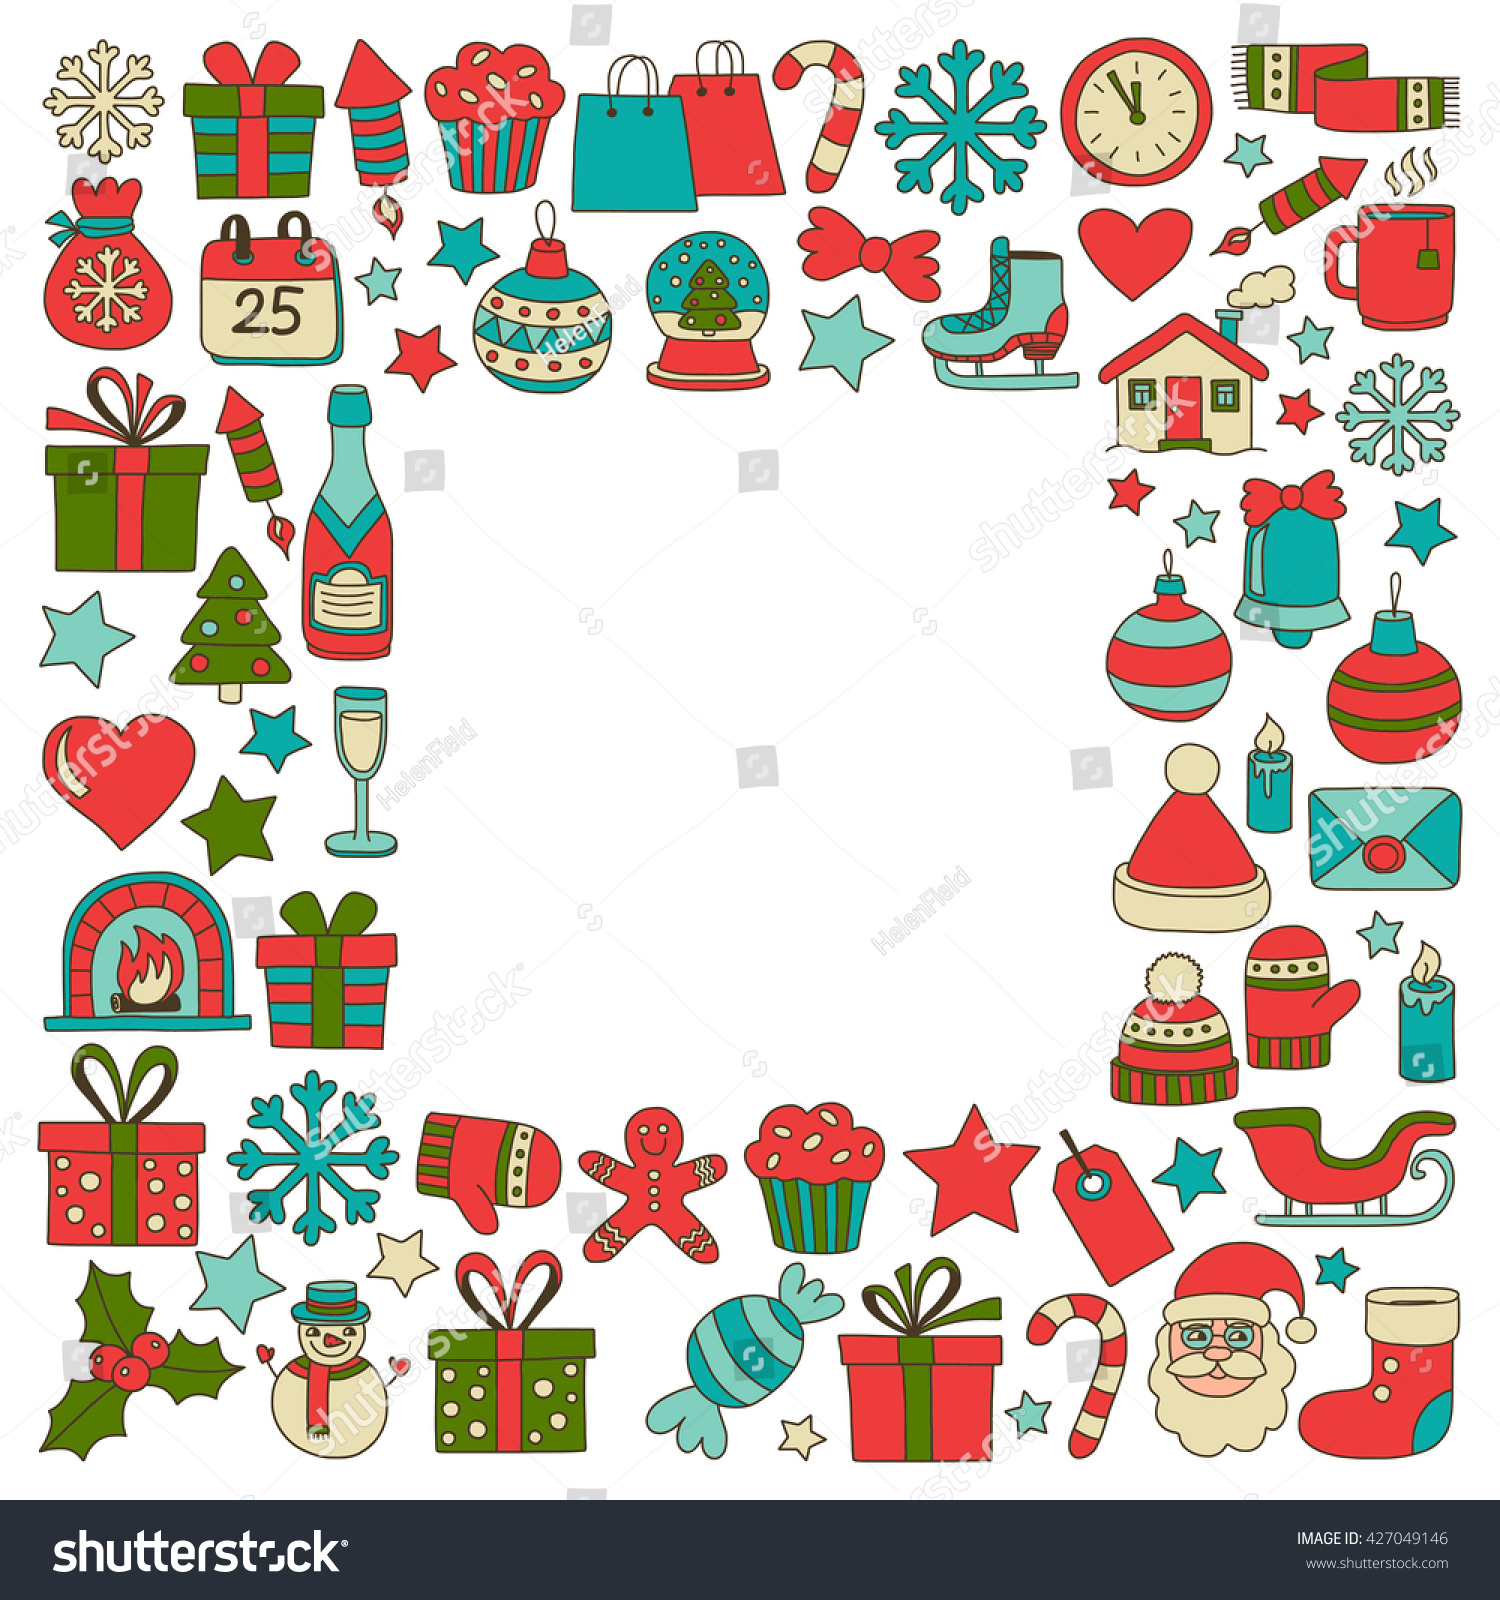 Doodle Vector Icons Merry Christmas And Happy New Year - 427049146 : Shutterstock